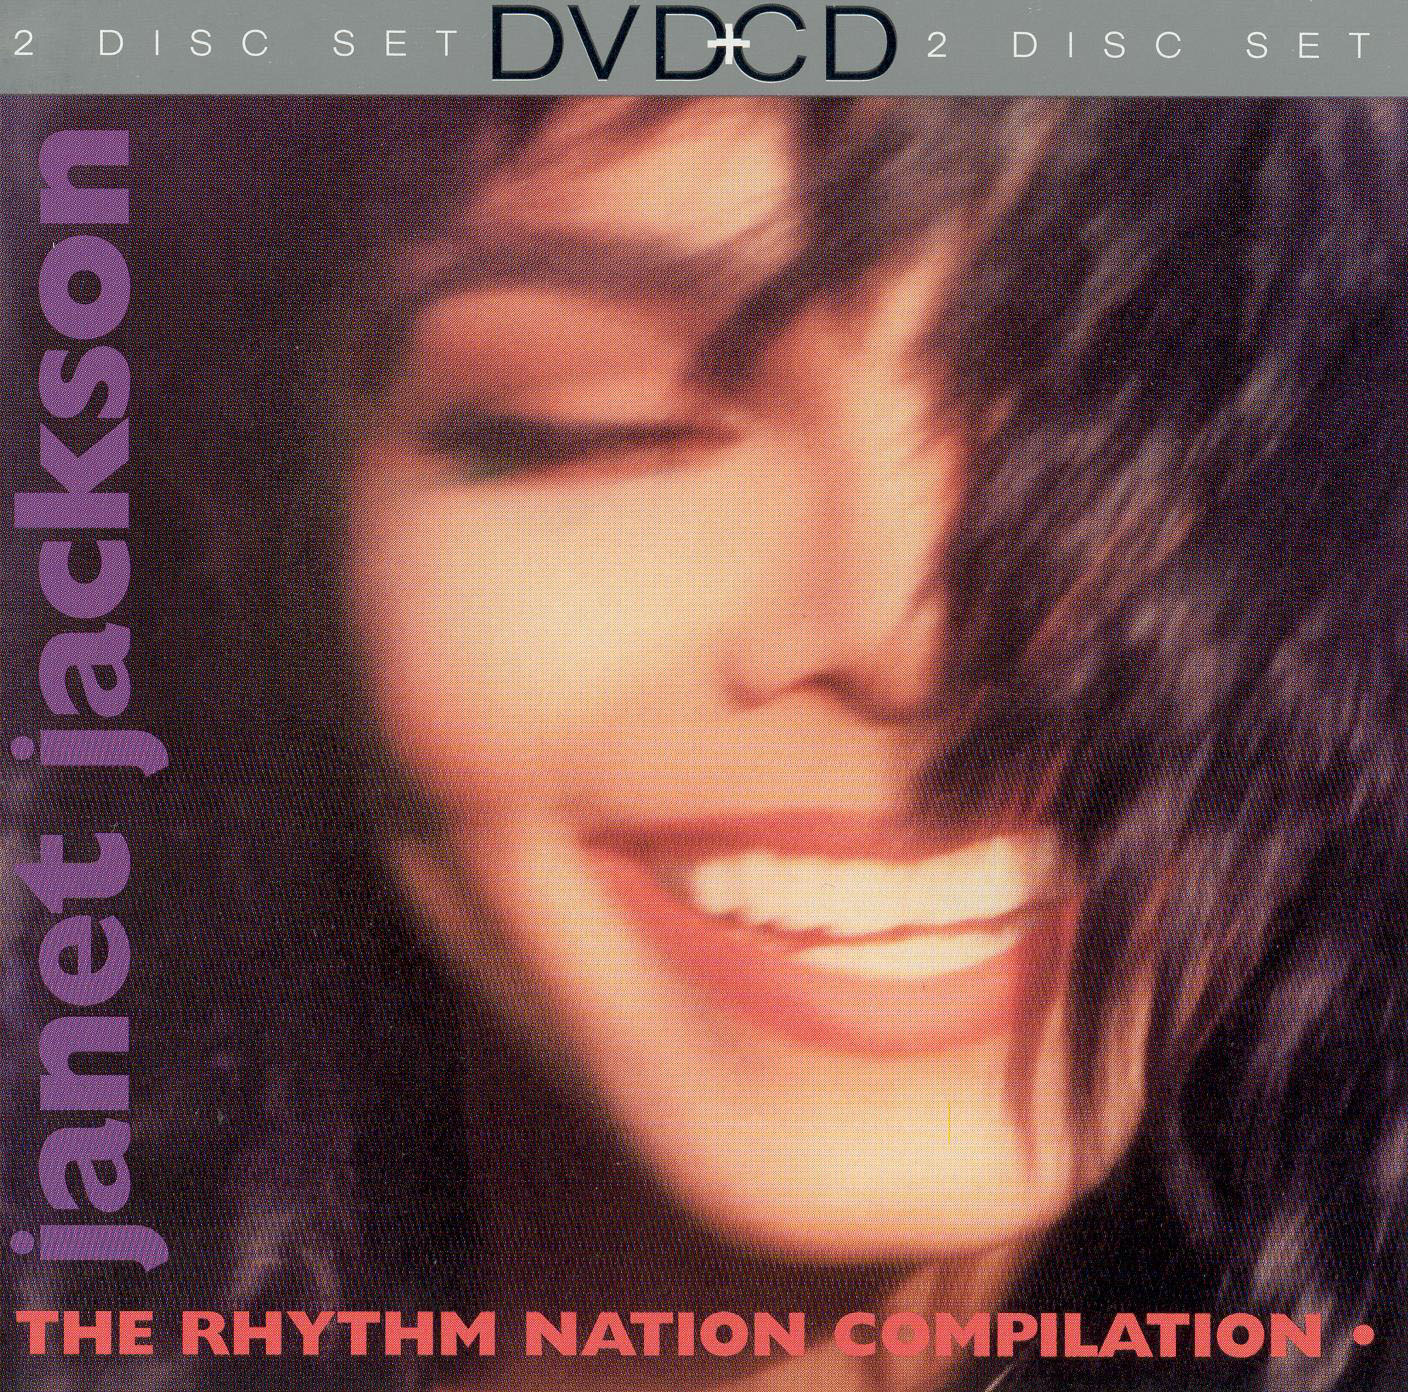 Janet Jackson: The Rhythm Nation Compilation